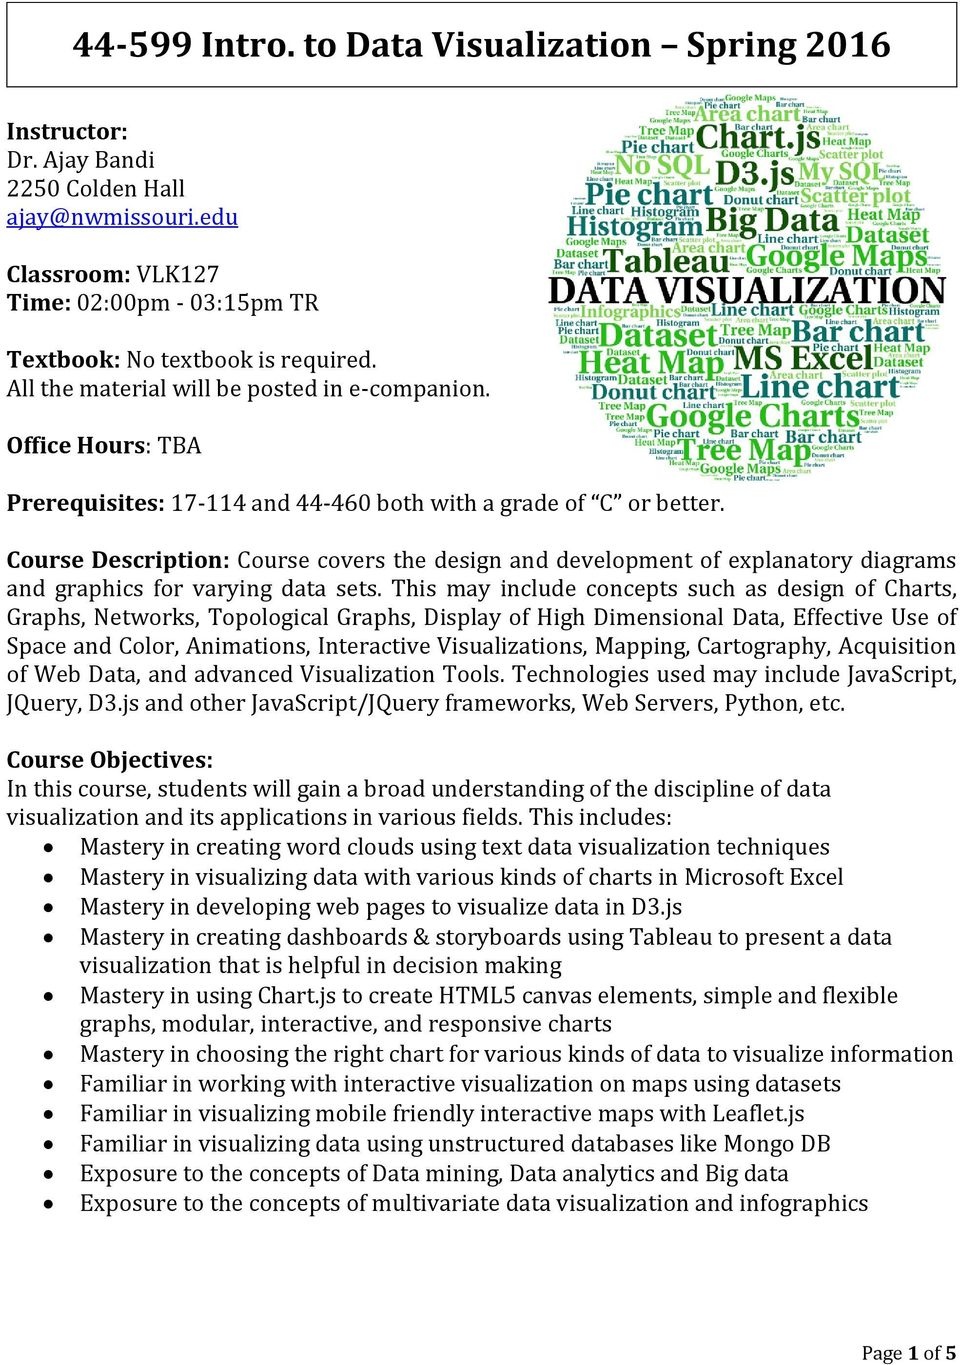 Course Description: Course covers the design and development of explanatory diagrams and graphics for varying data sets.